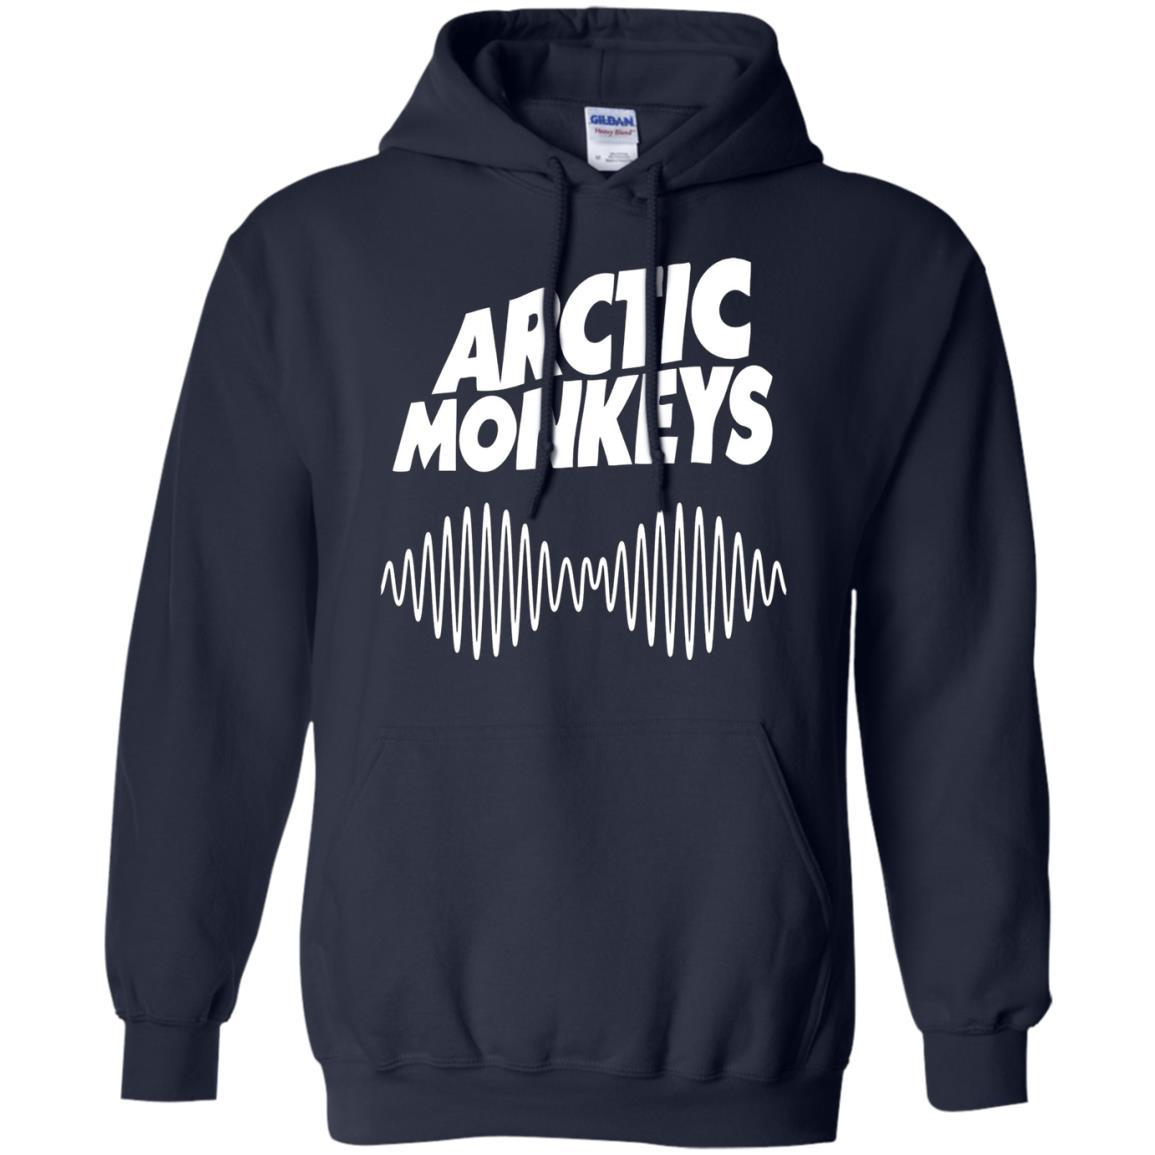 Artic Monkeys Soundwave Music Band - Pullover Hoodie Navy / 5XL